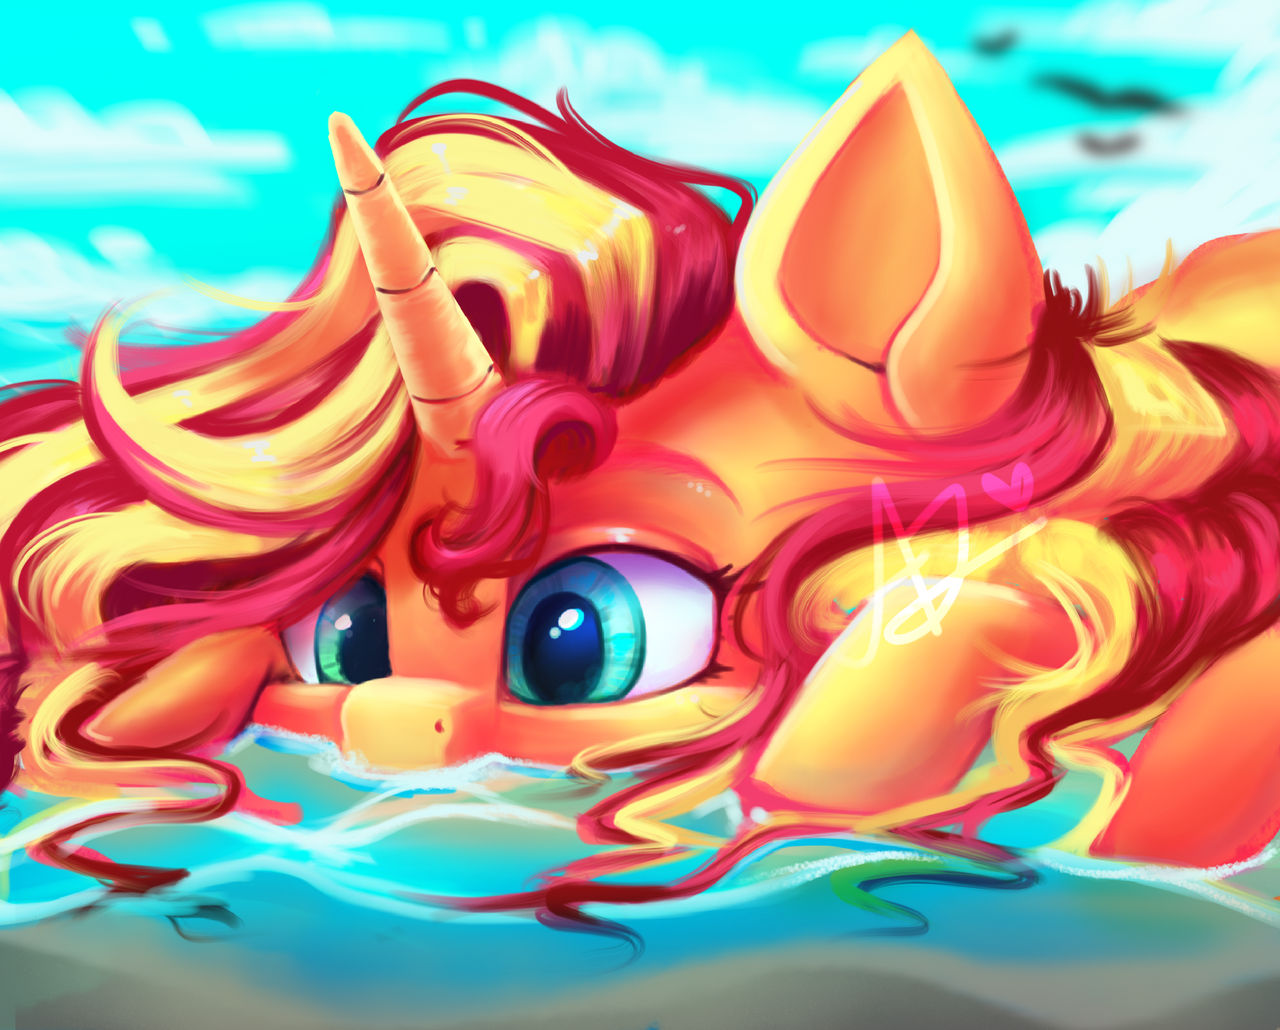 [Obrázek: a_beautiful_sunset_on_the_water_by_thewi..._B-3M0S2V4]